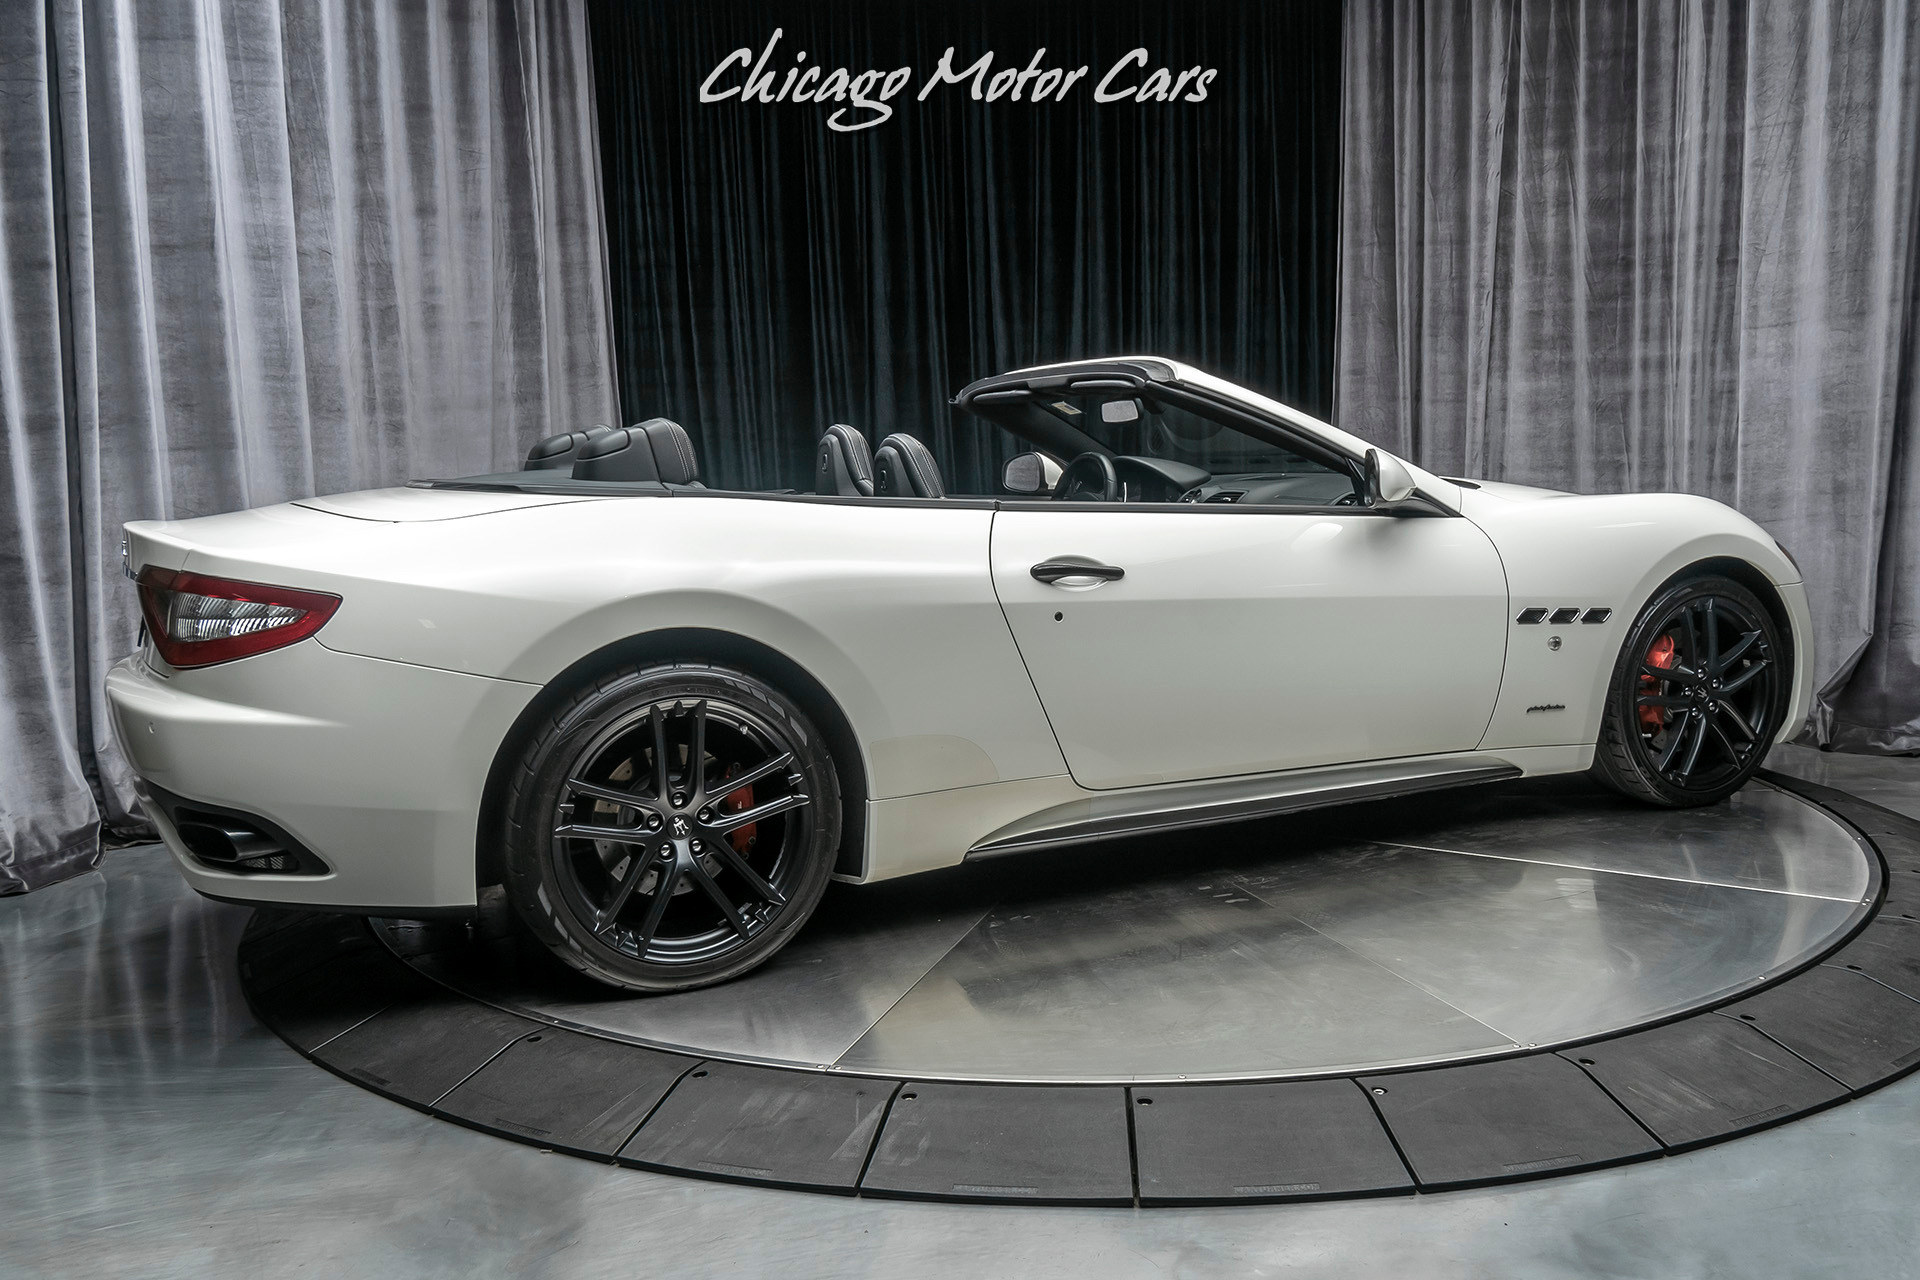 Used-2015-Maserati-GranTurismo-Sport-Convertible-MC-DESIGN-WHEELS-FULL-LEATHER-WOOD-TRIM